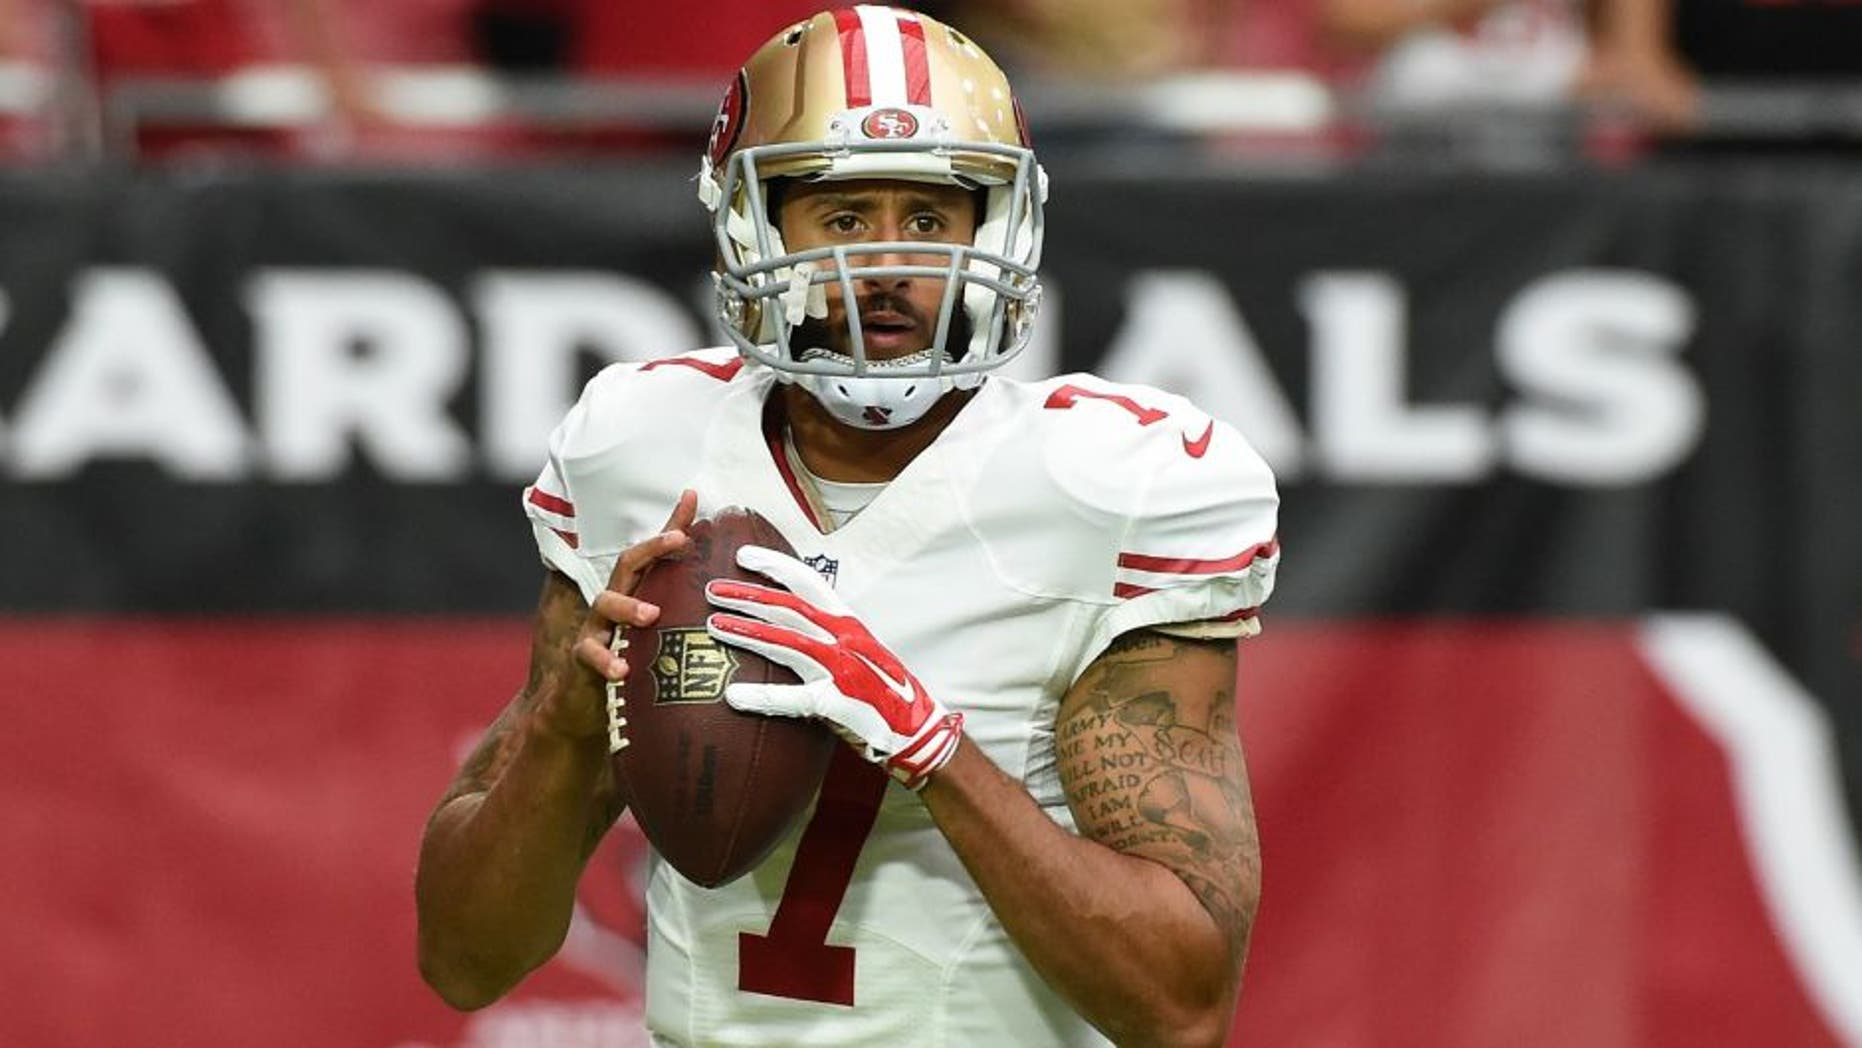 against the San Francisco 49ers at University of Phoenix Stadium on September 27, 2015 in Glendale, Arizona.,GLENDALE, AZ - SEPTEMBER 27: Colin Kaepernick #7 of the San Francisco 49ers prepares for a game against the Arizona Cardinals at University of Phoenix Stadium on September 27, 2015 in Glendale, Arizona. (Photo by Norm Hall/Getty Images)